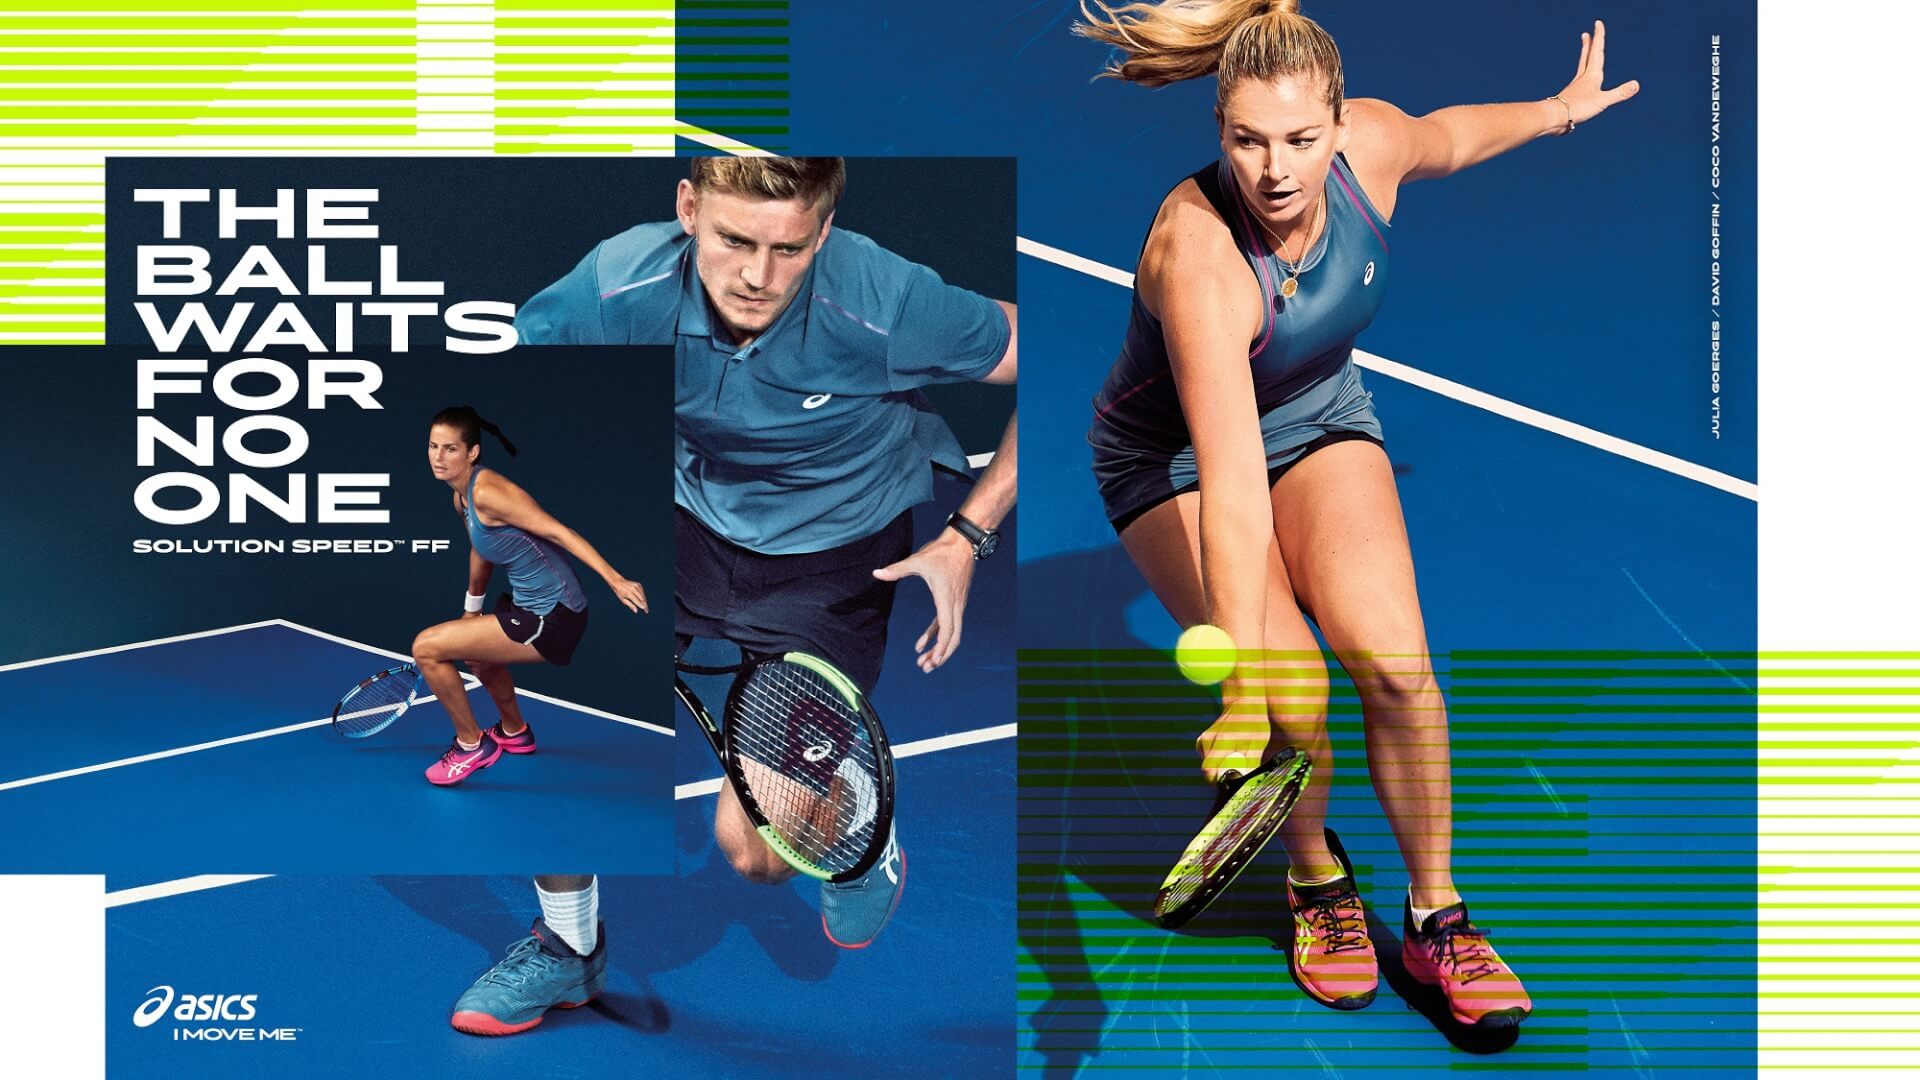 Asics: Ball Waits for No One